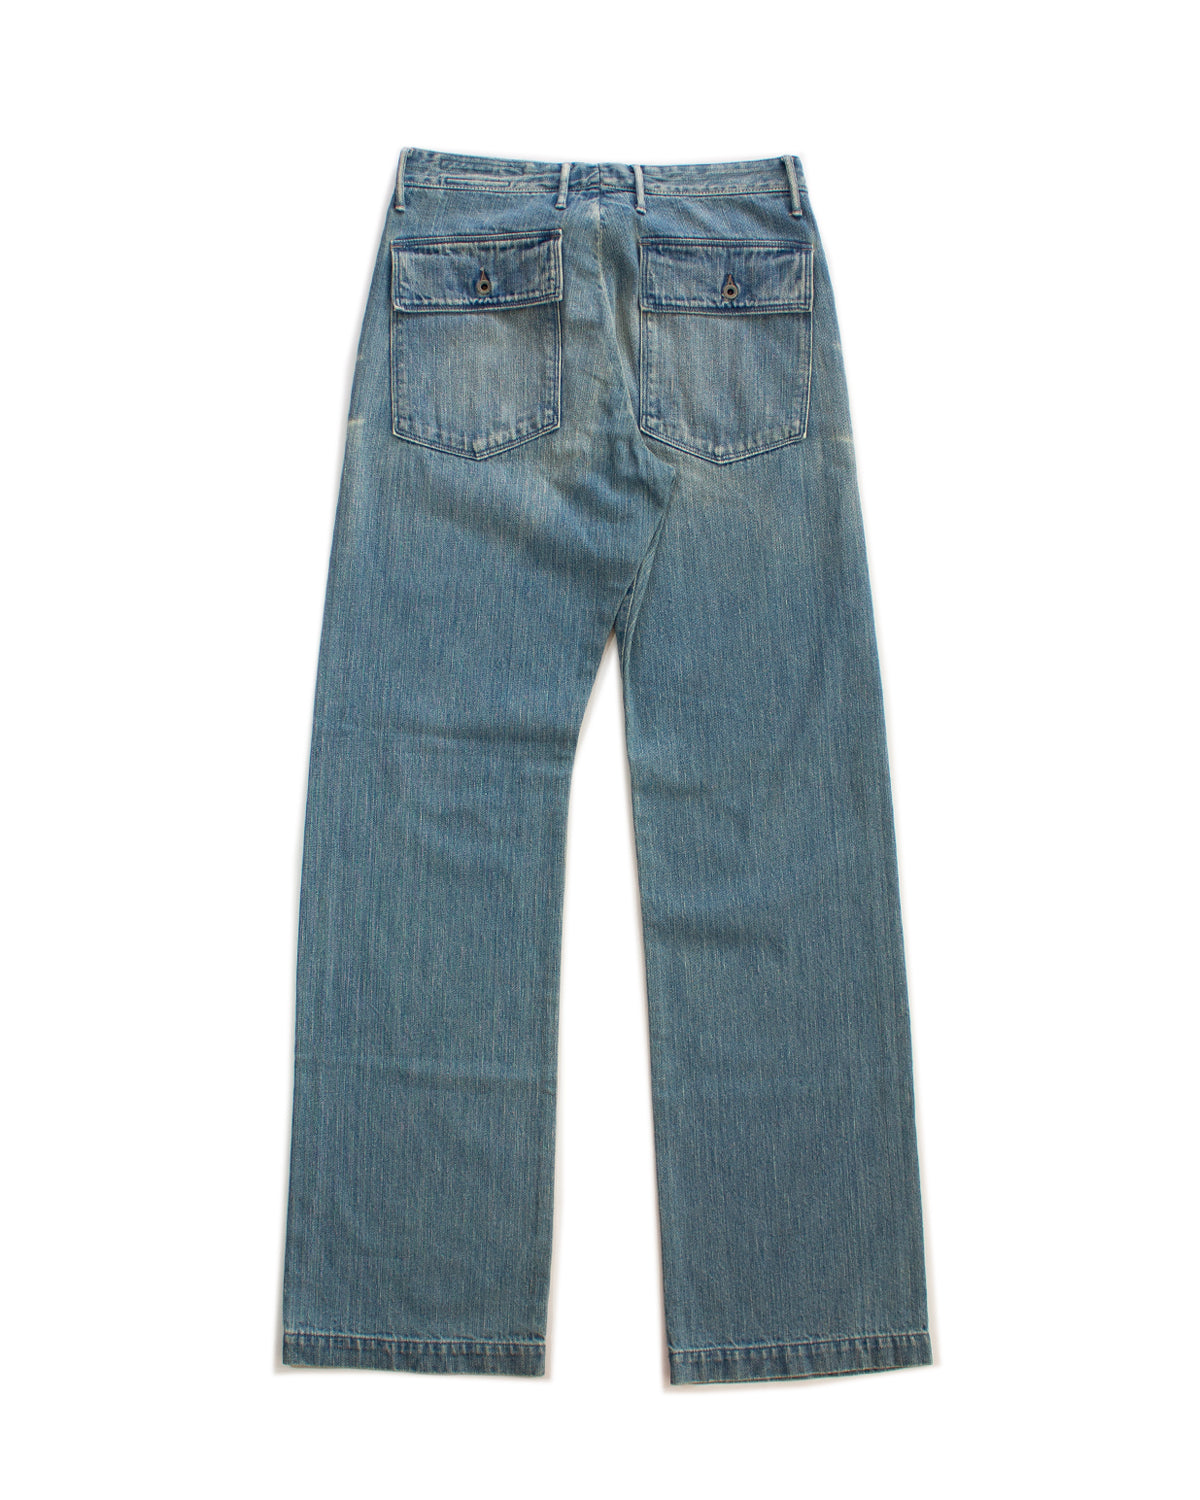 Kapital Baker Denim with Subtle Flare 2000s